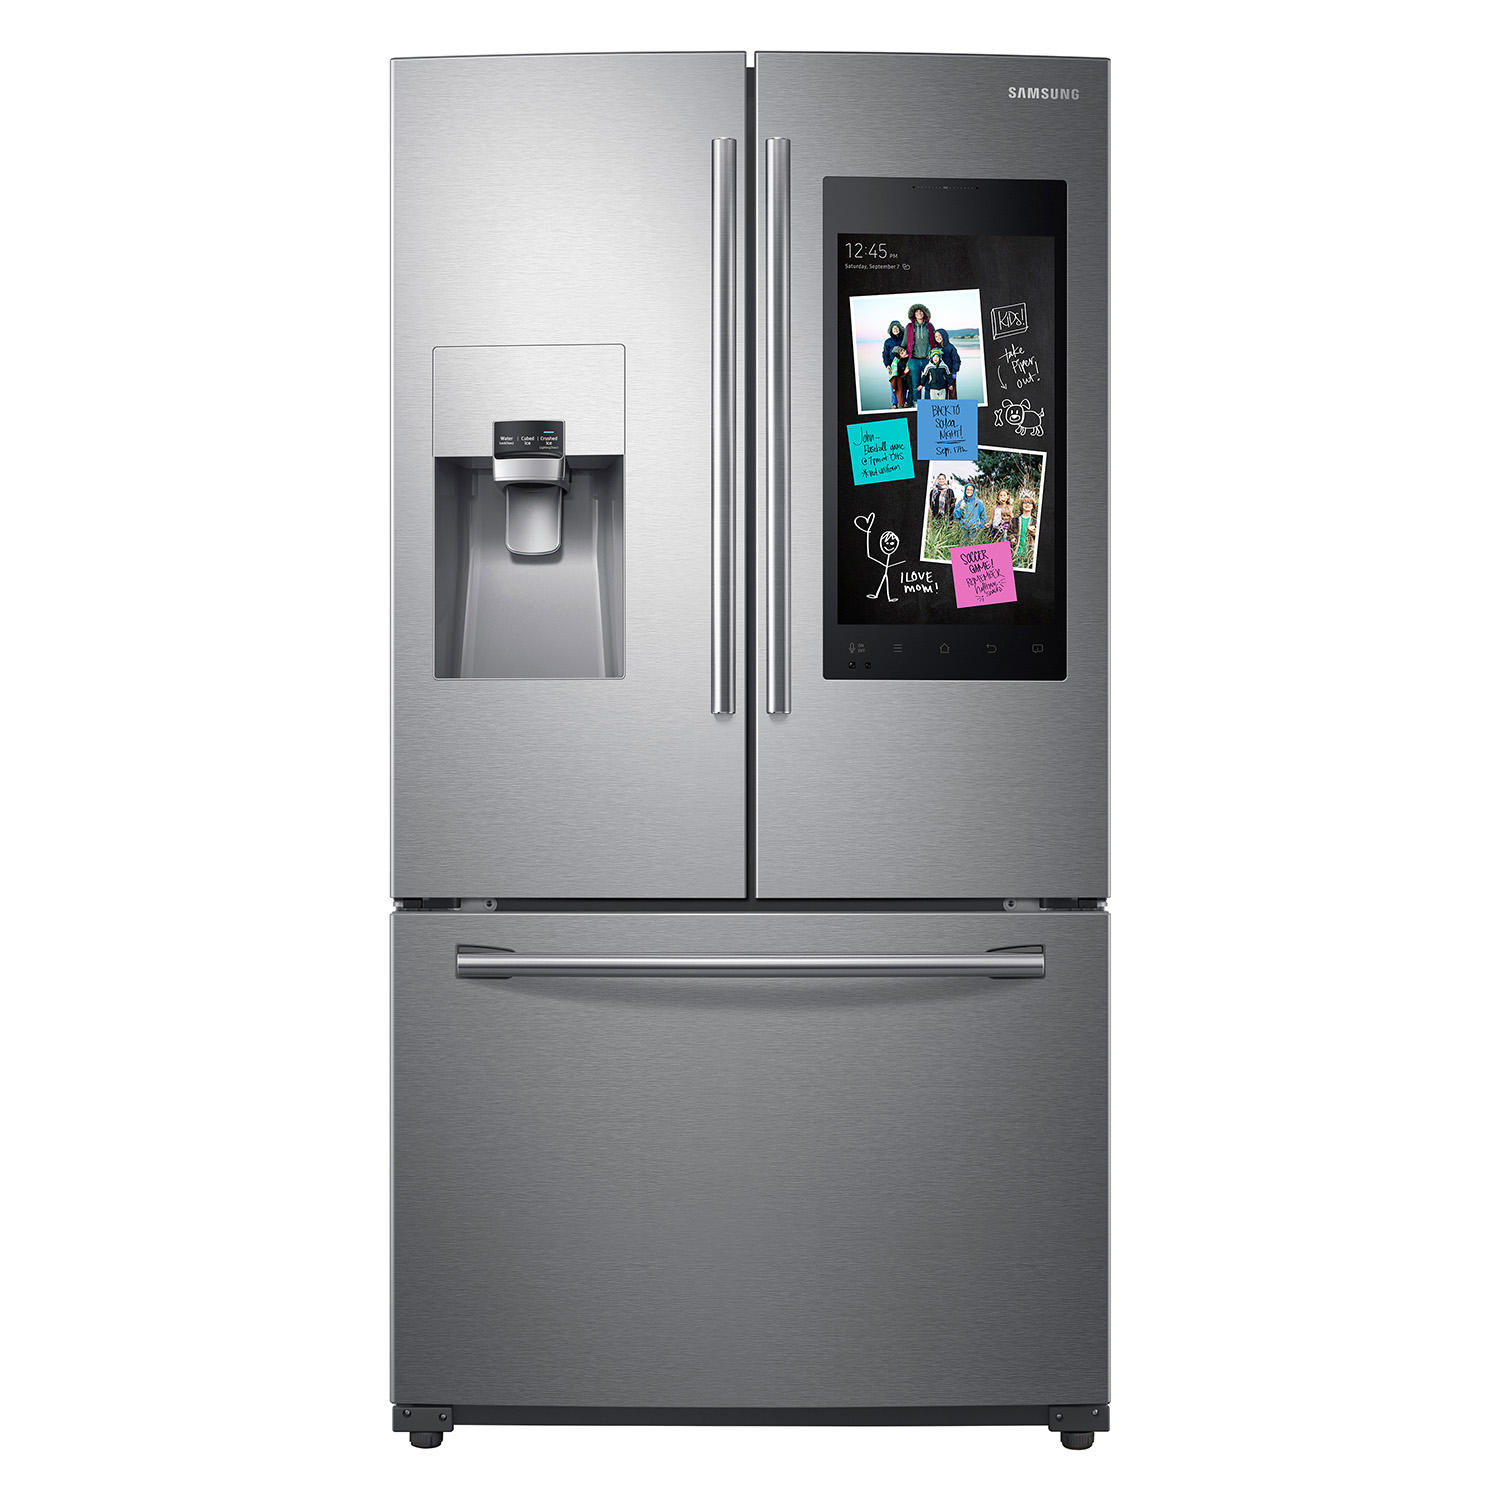 $1100 Off Select Appliances